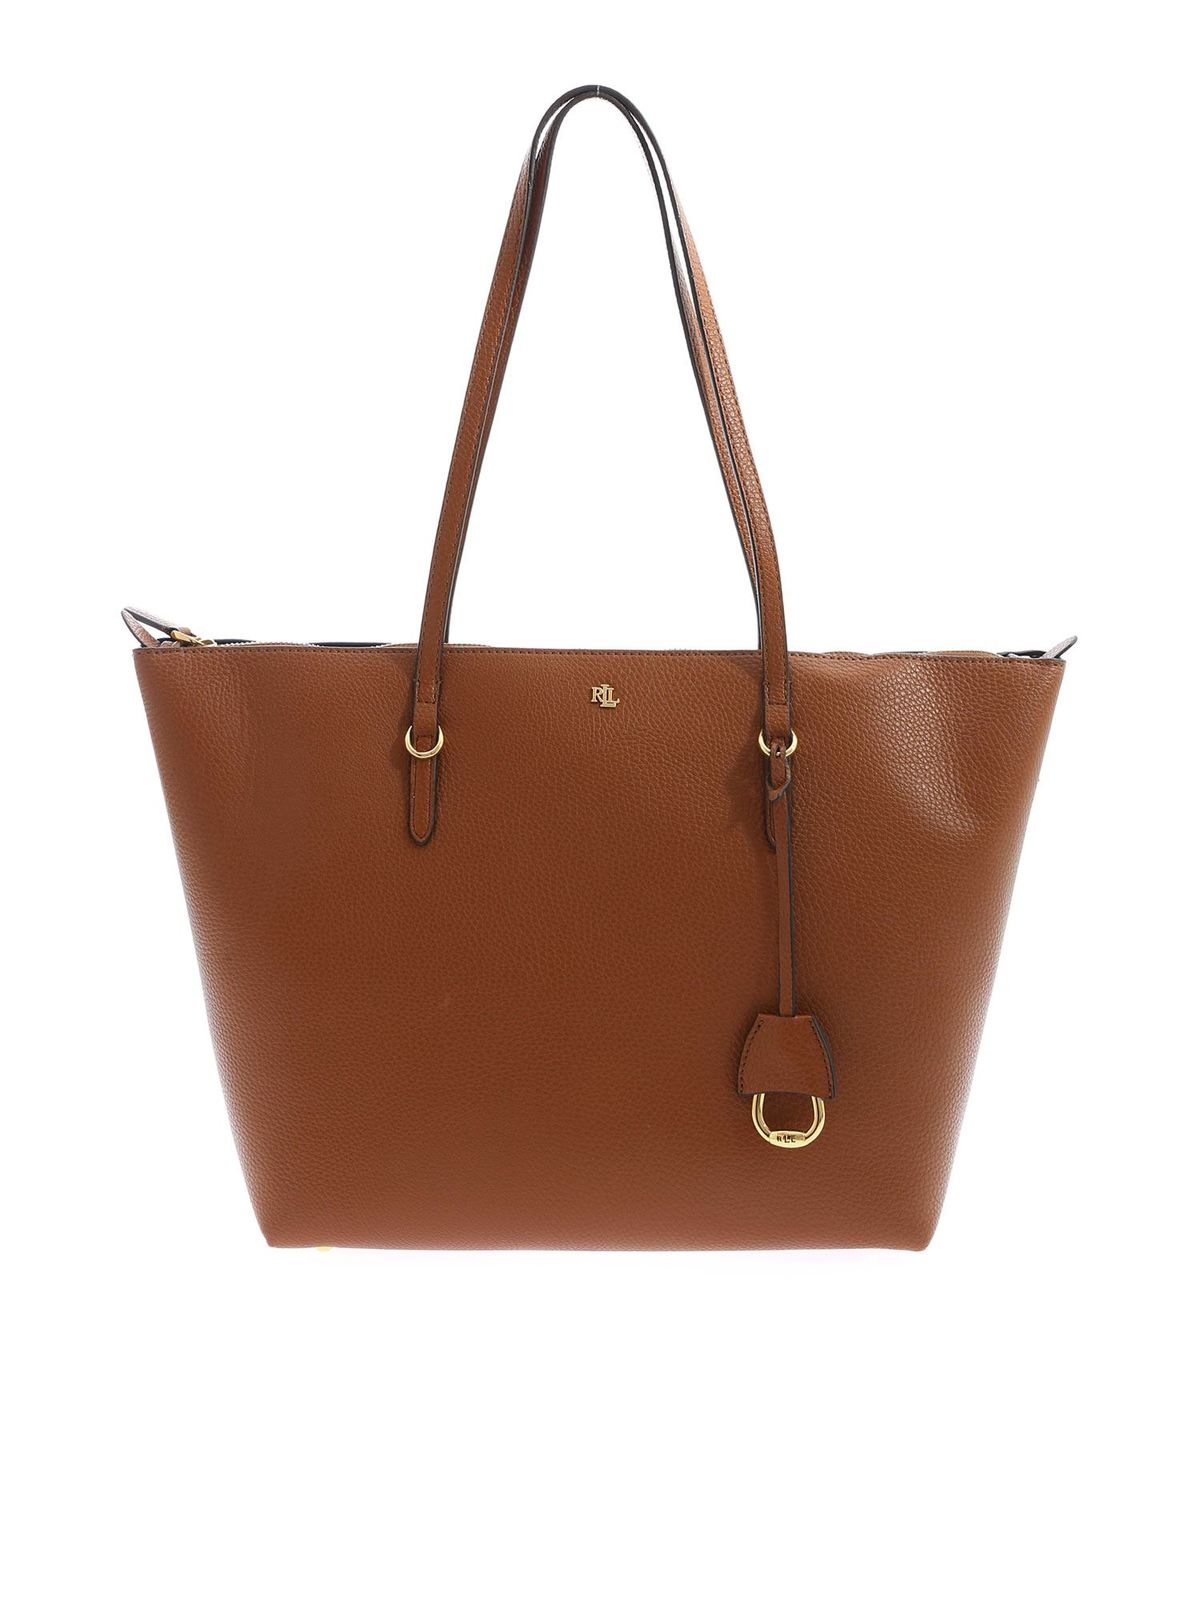 Lauren Ralph Lauren GOLDEN LOGO SHOPPER IN BROWN